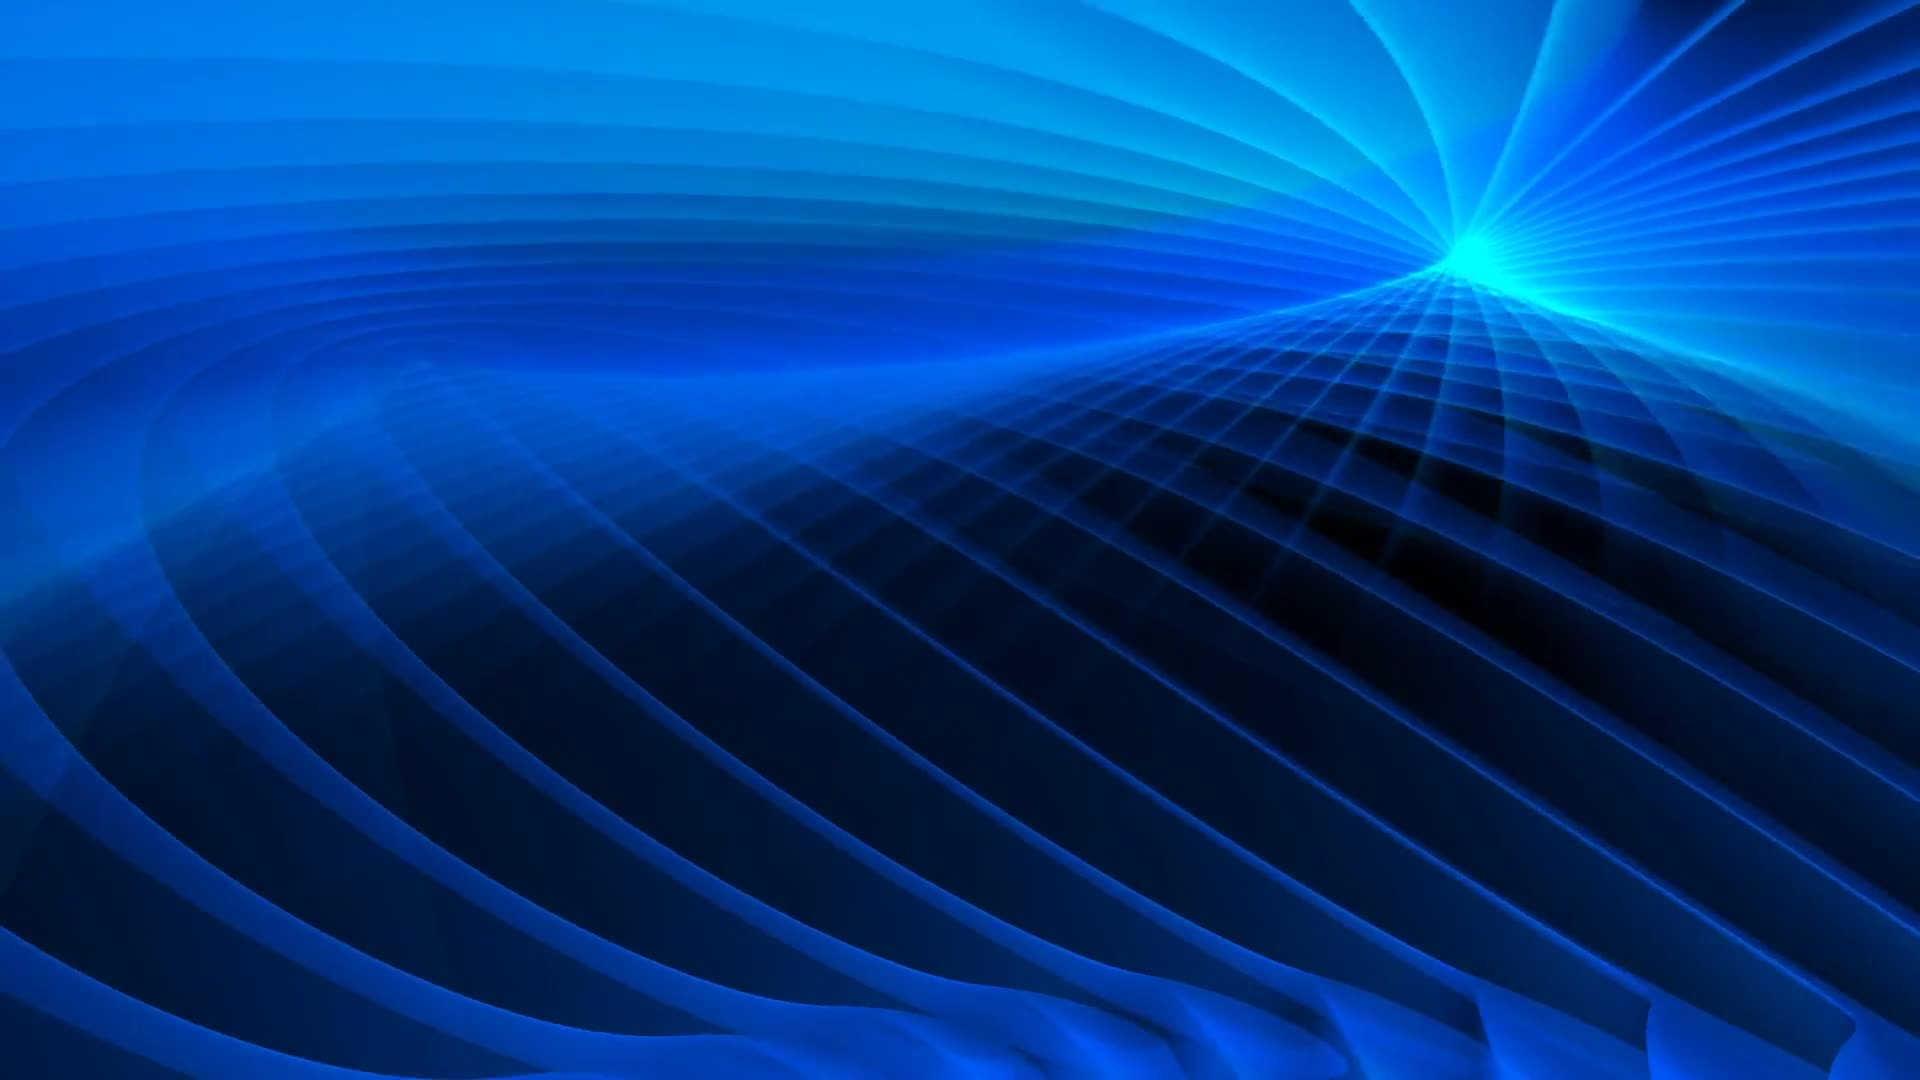 Spinning blue abstract background loop